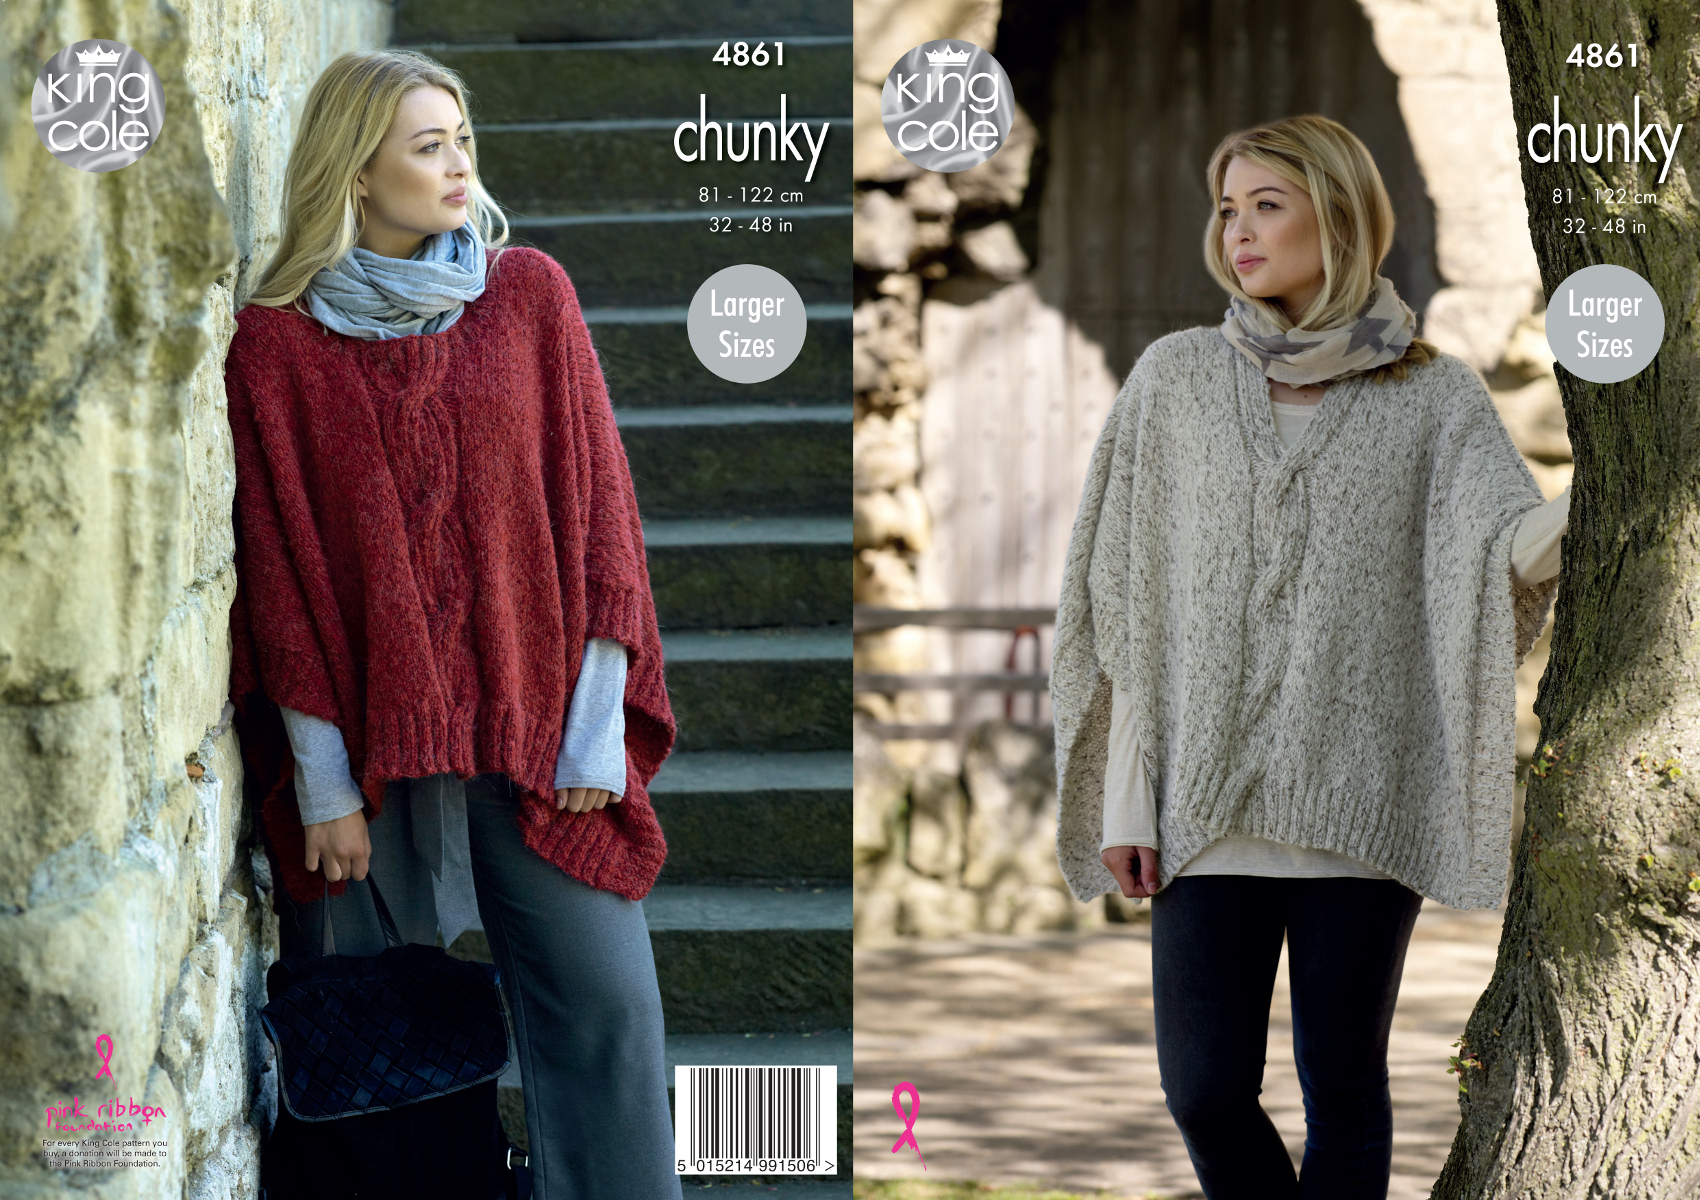 Poncho Pattern Knit Details About Womens Round Or V Neck Cabled Poncho Cape Chunky Knitting Pattern King Cole 4861